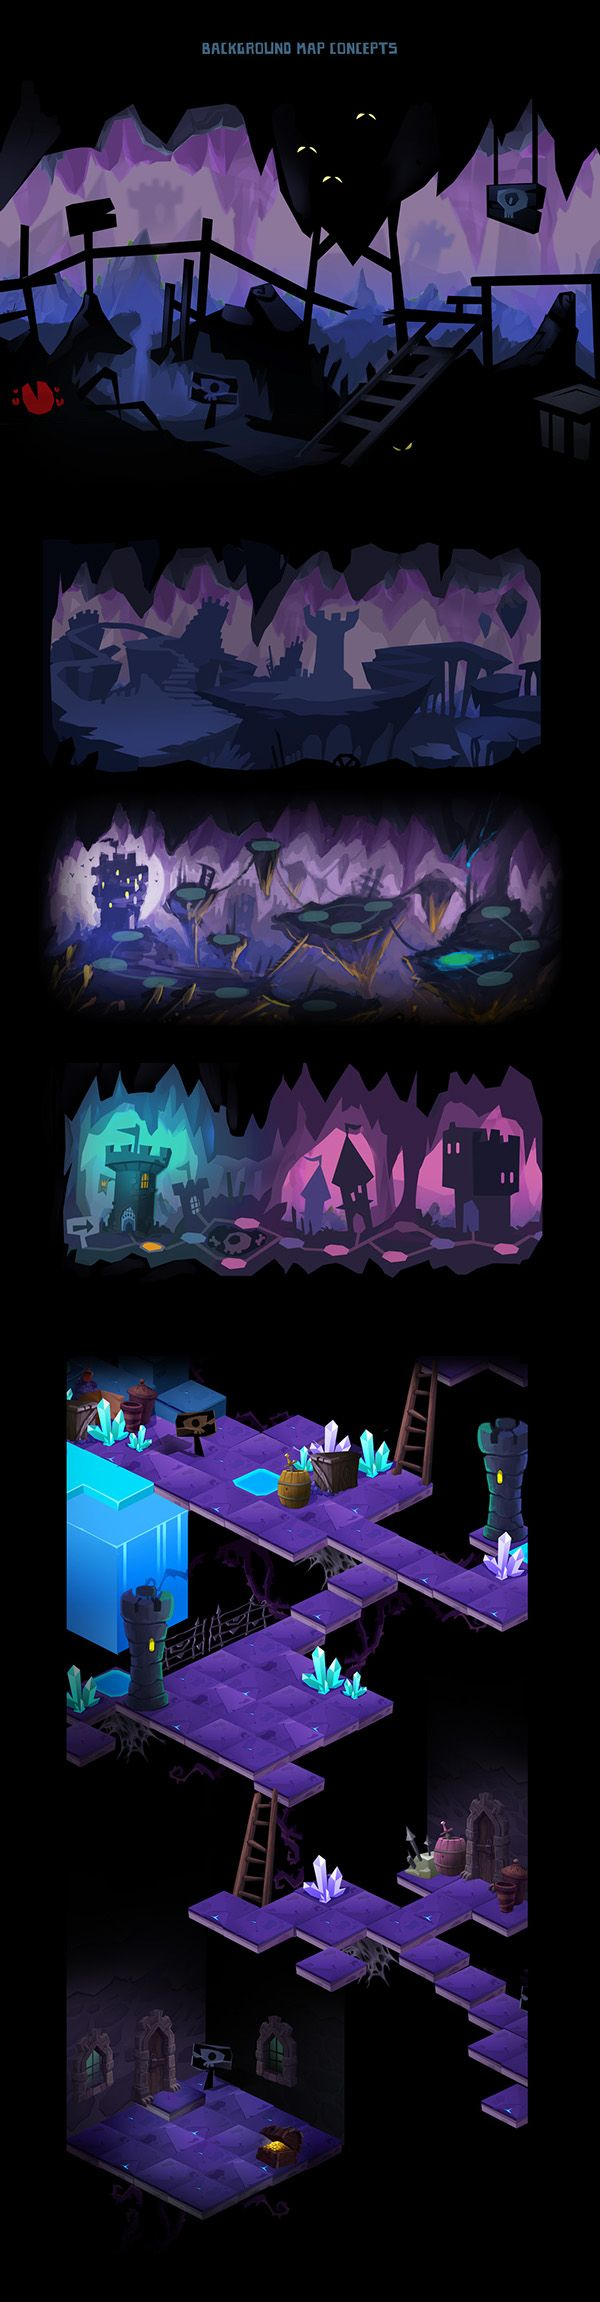 Mighty Monsters Map Concepts on Behance